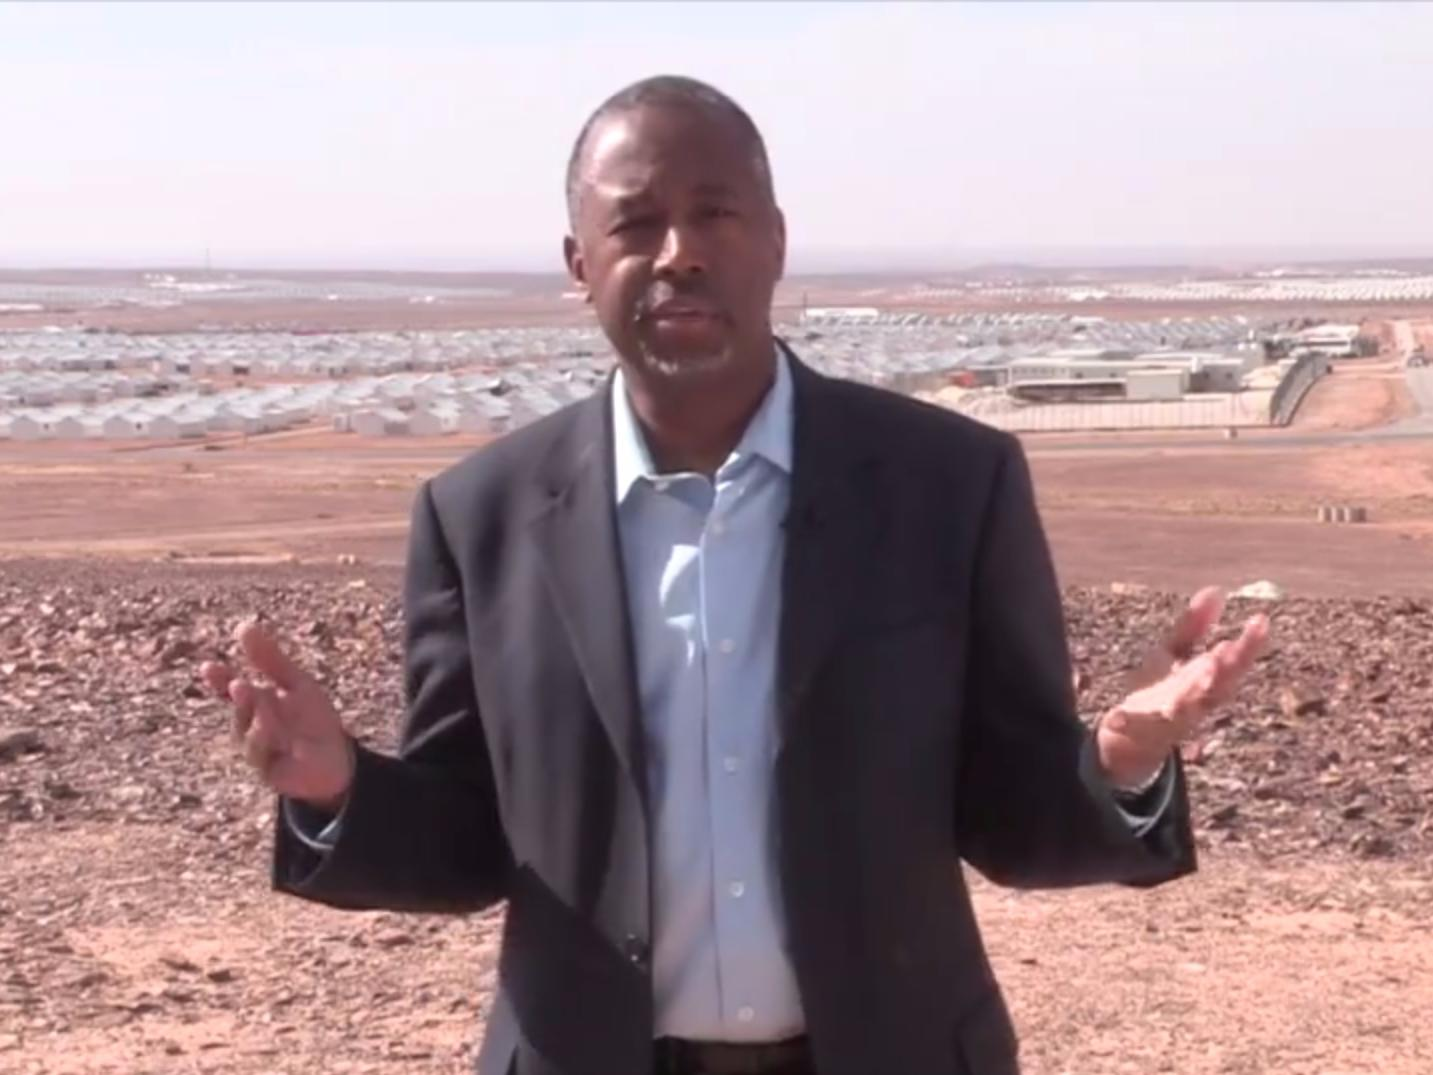 BEN CARSON: I just visited a Syrian refugee camp, and here's what I learned